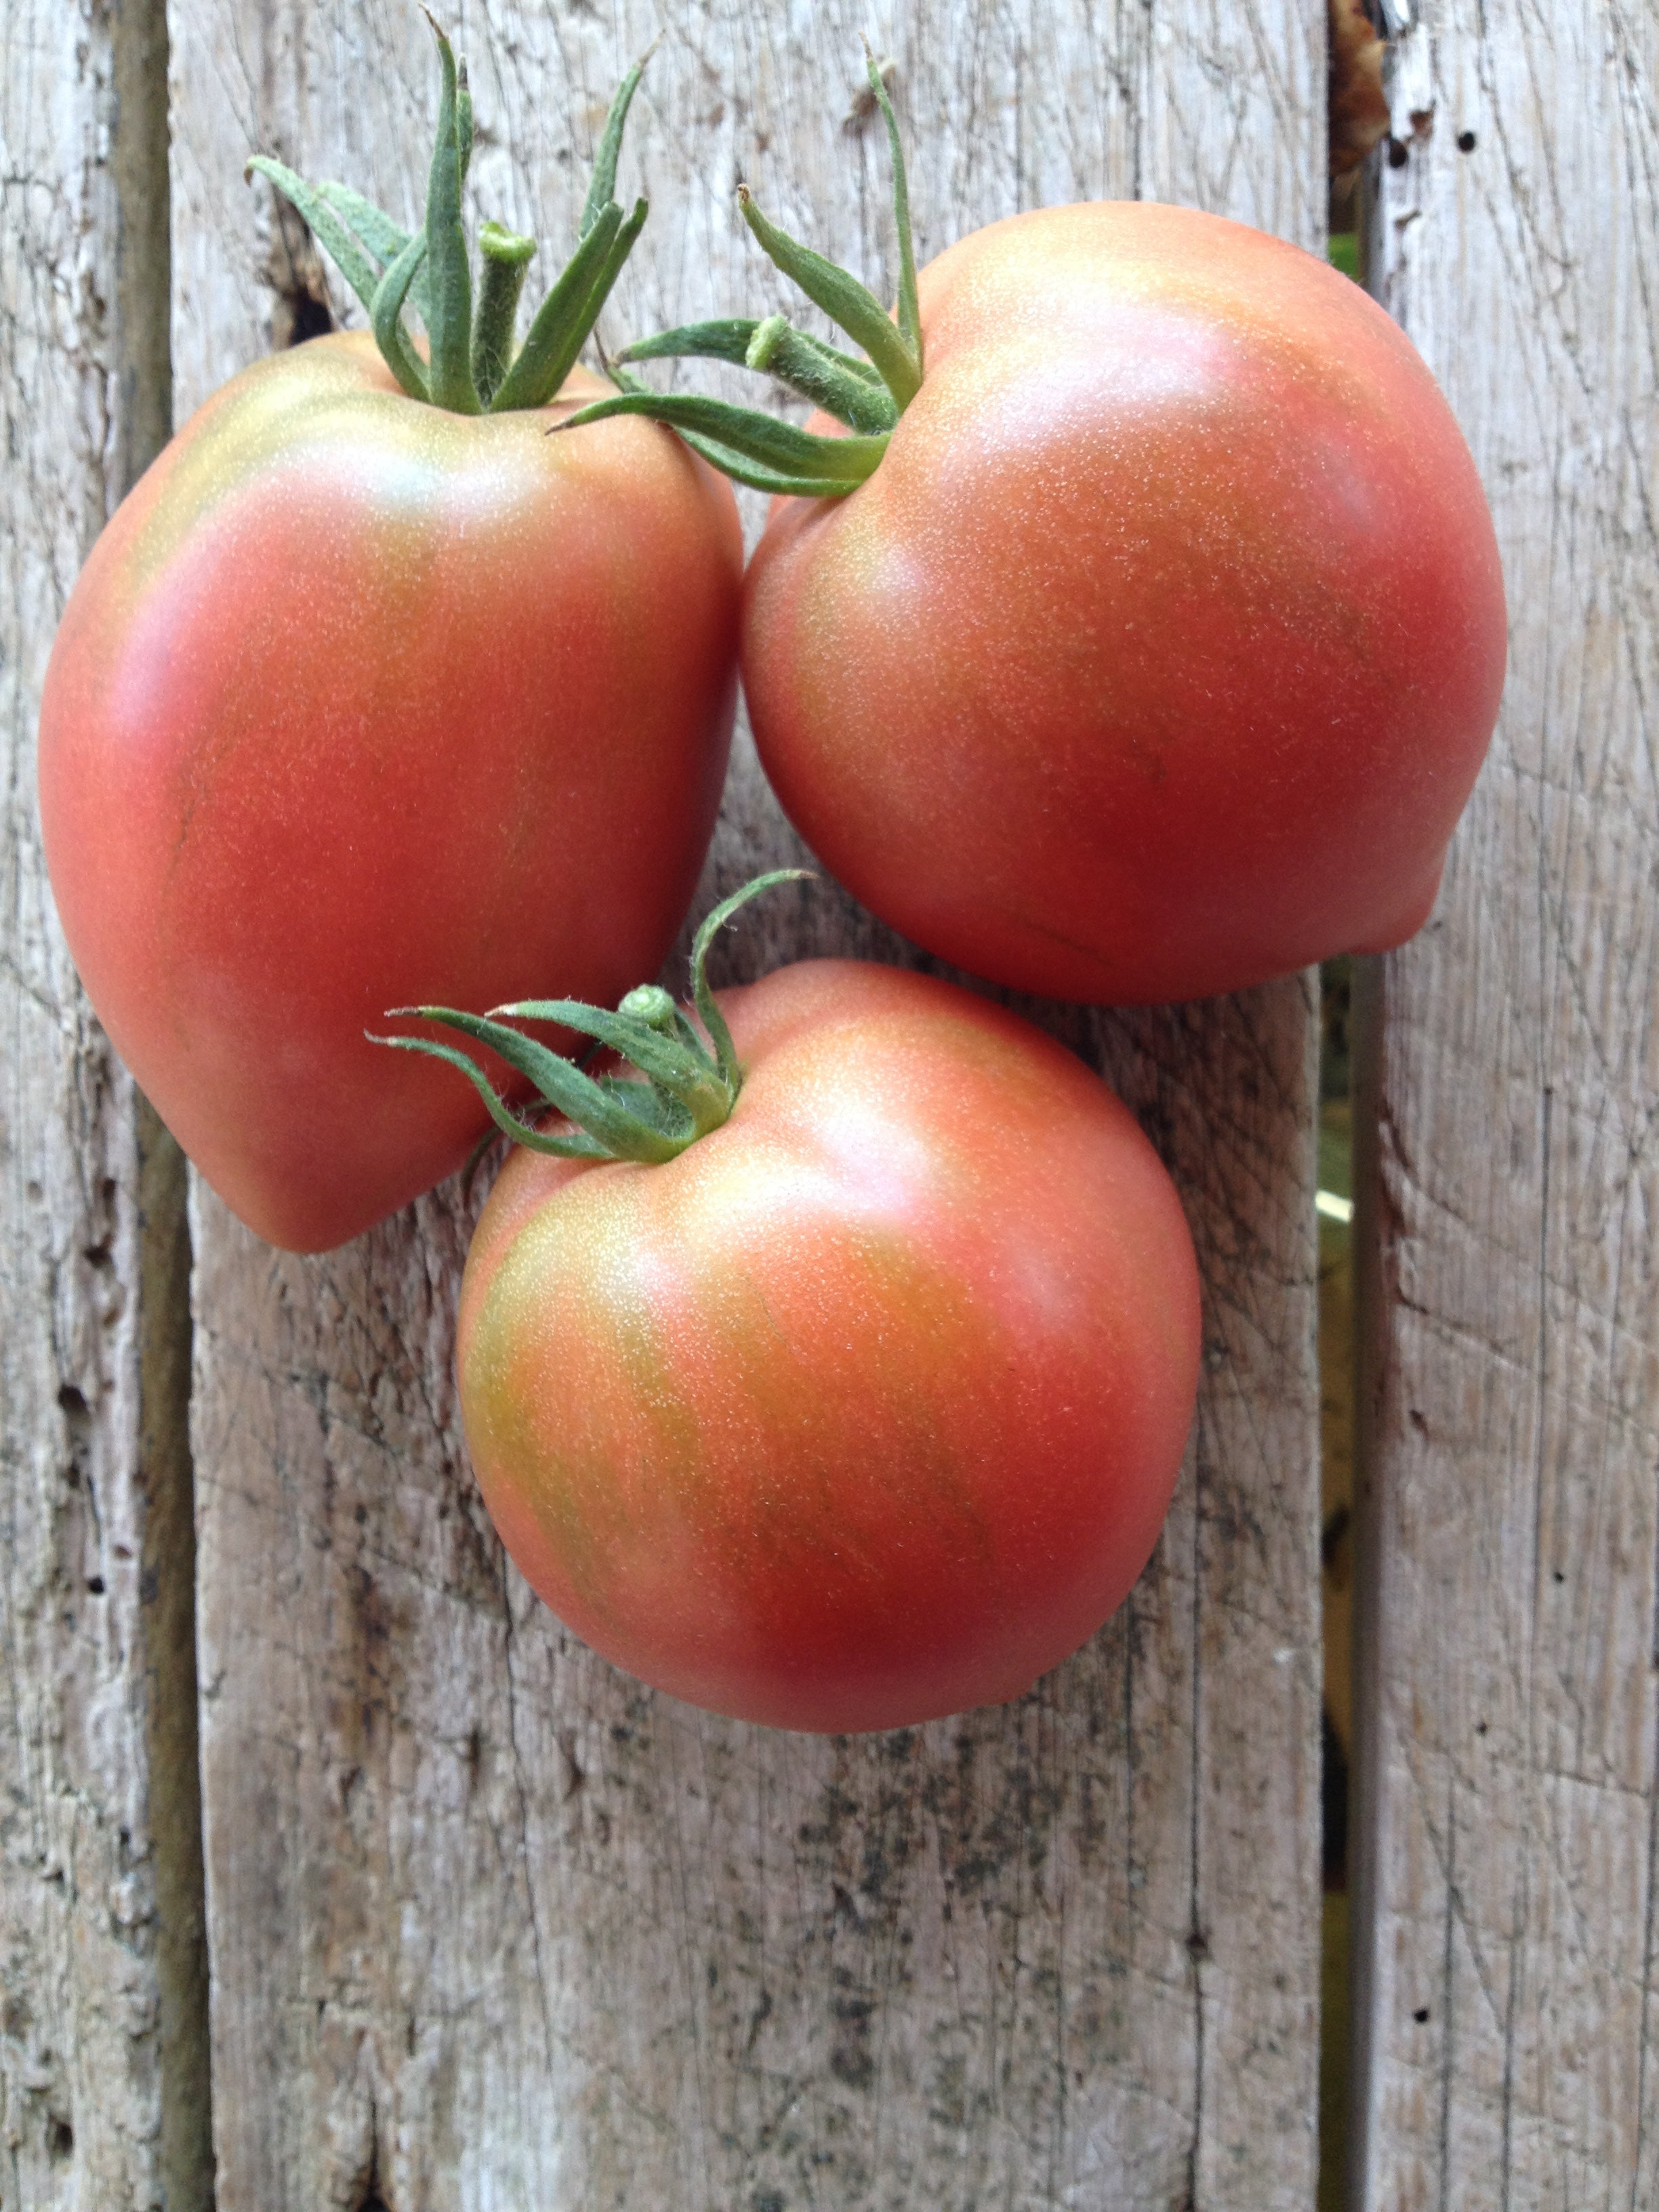 Anna Russian-Tomatoes-Vegetables-Full Circle Seeds